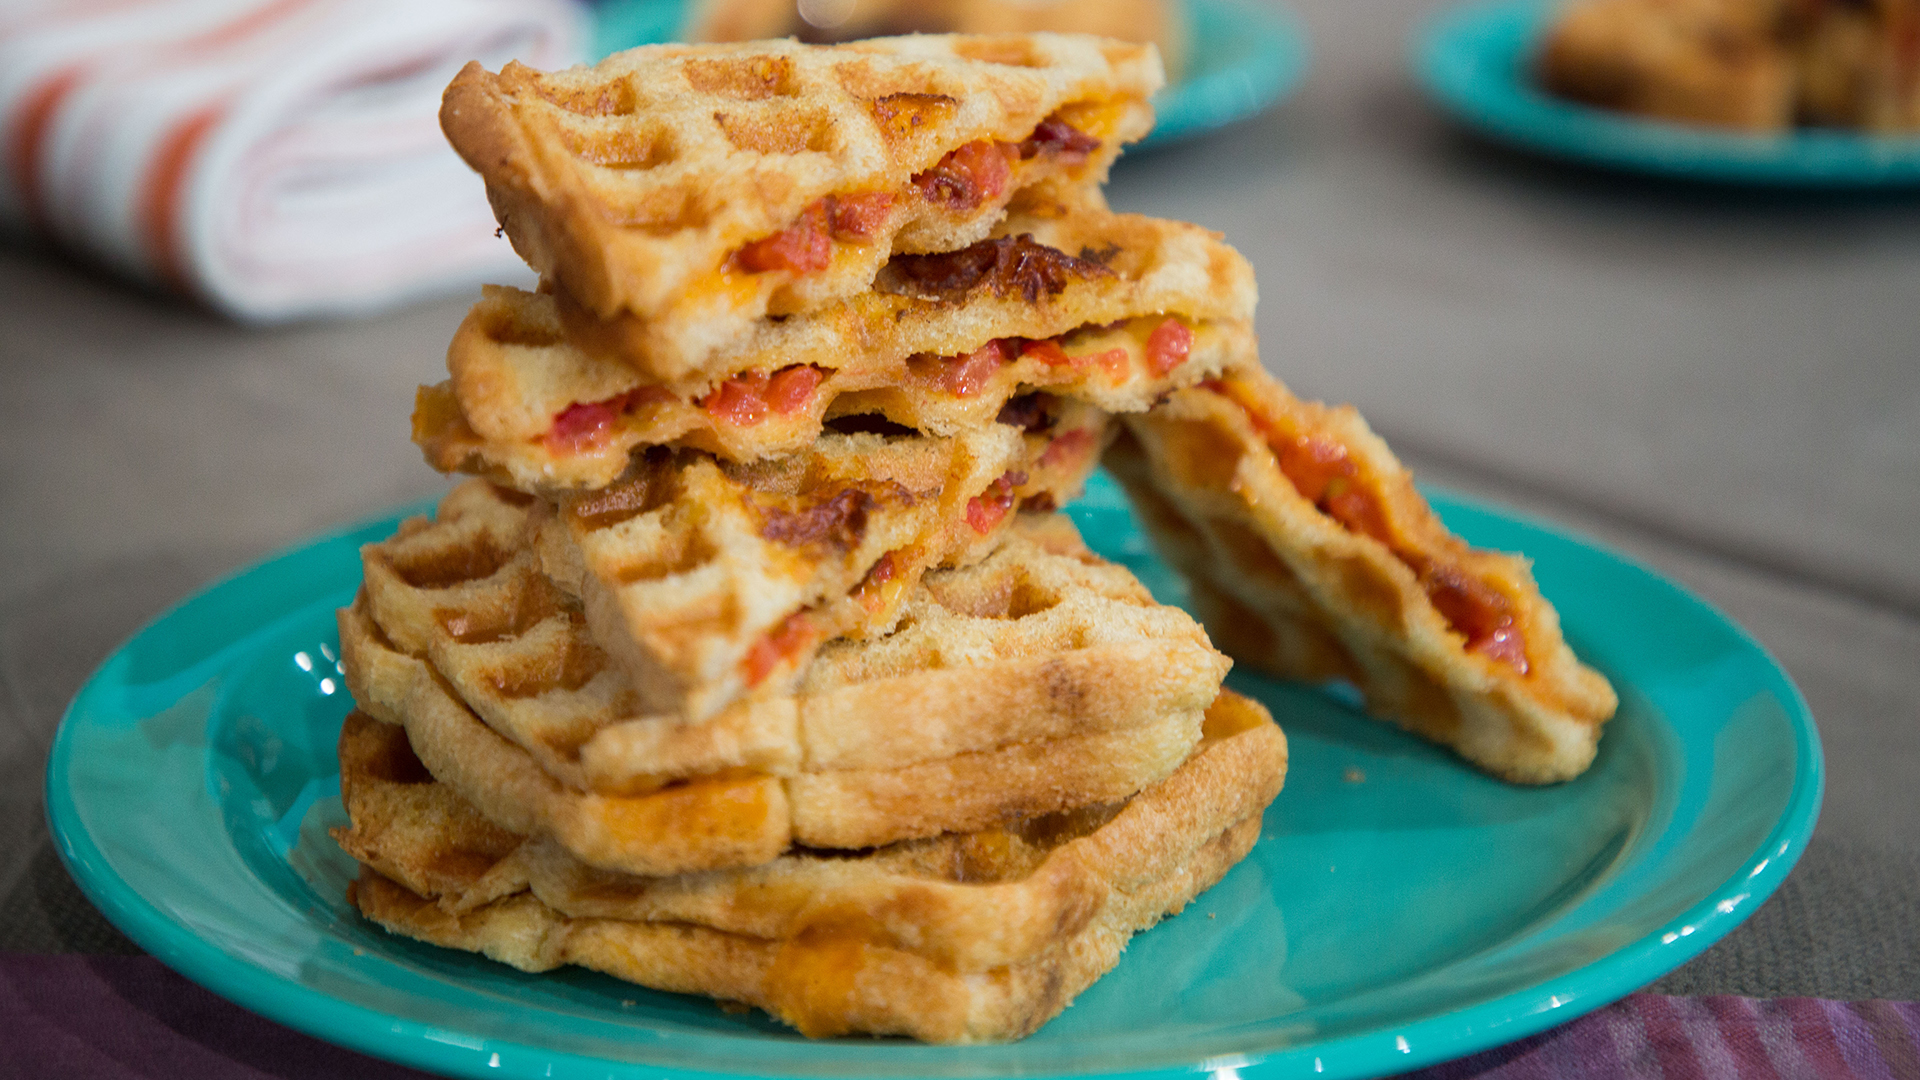 Cold-weather recipes: Waffled grilled cheese, hot spiced cider and more